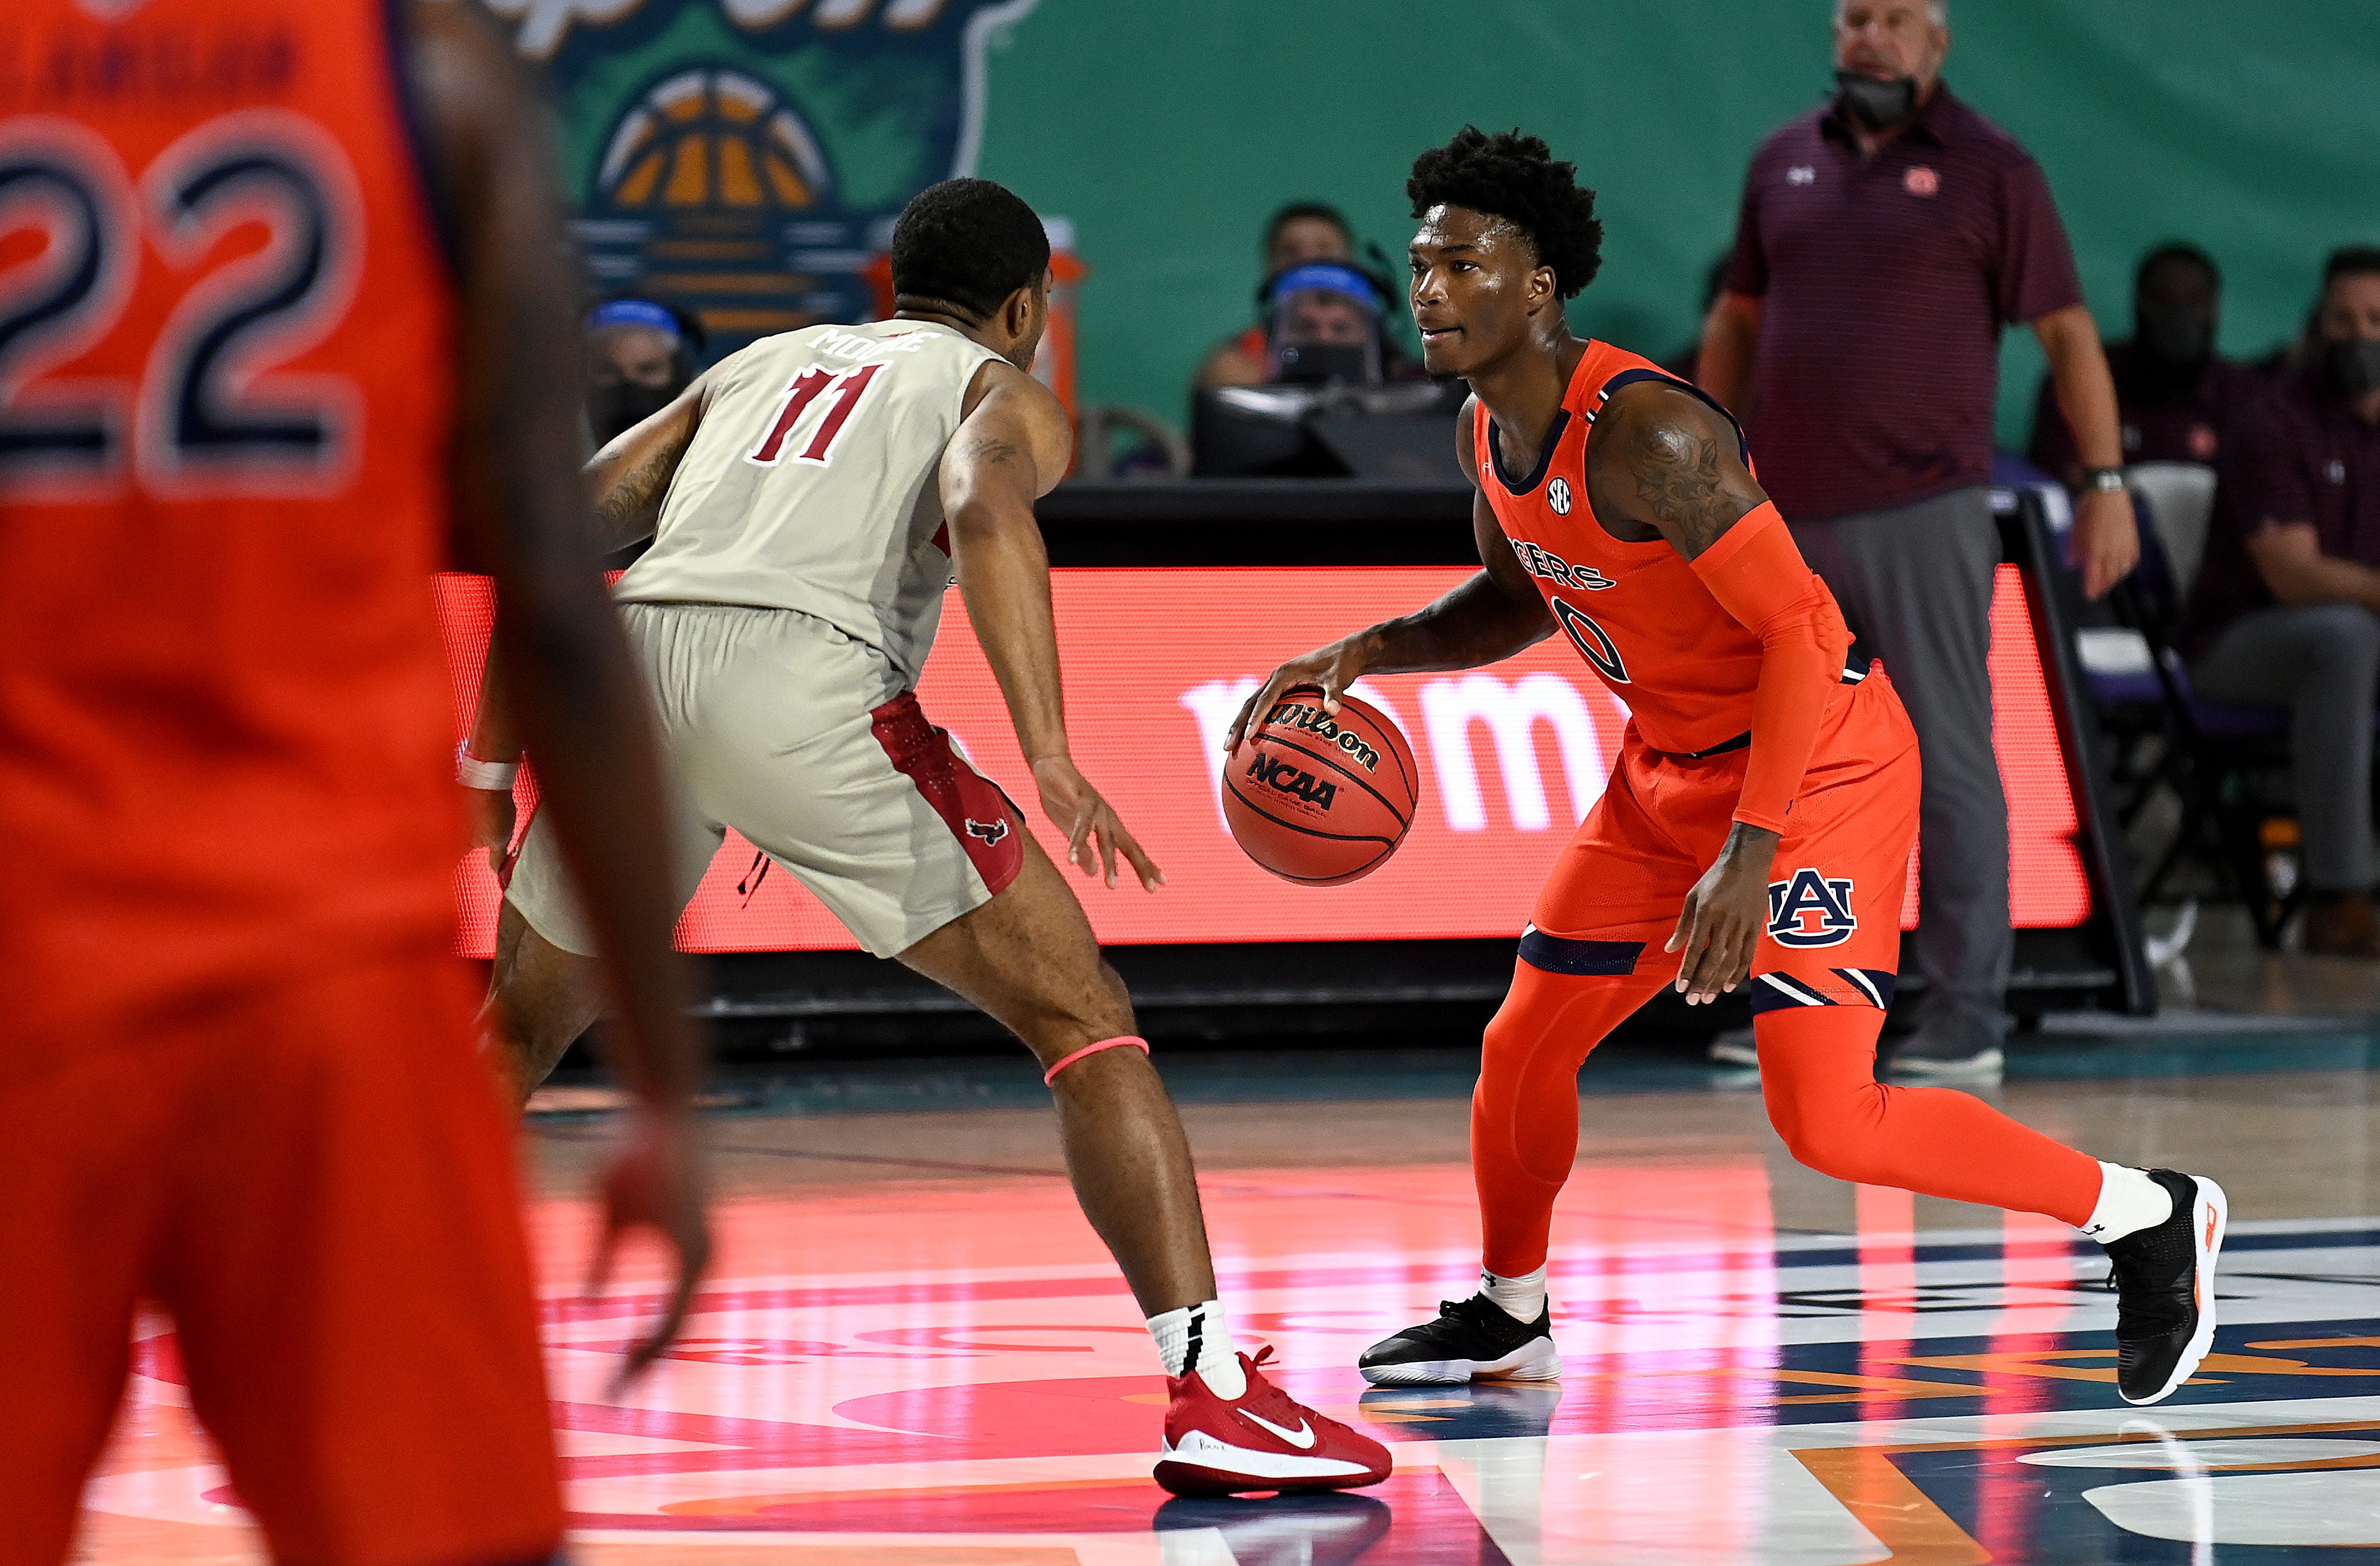 Without top recruit Sharife Cooper, Auburn escapes against St. Joseph's in overtime